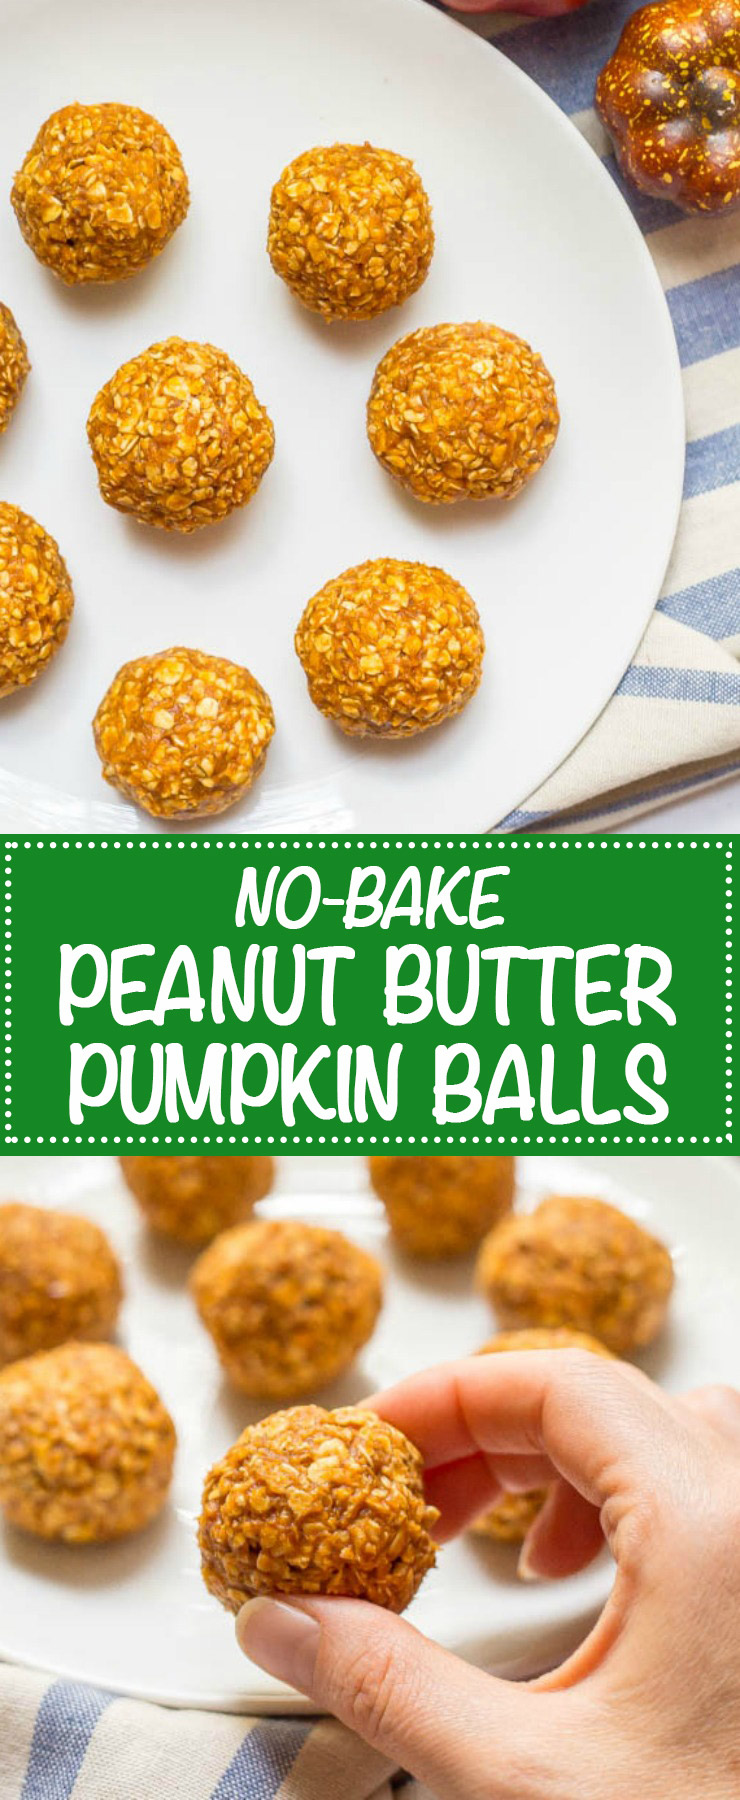 No-bake Peanut Butter Pumpkin Balls are a high-protein fall treat that are quick and easy to make with just 6 wholesome ingredients! Perfect for snacking or after a workout! | www.familyfoodonthetable.com